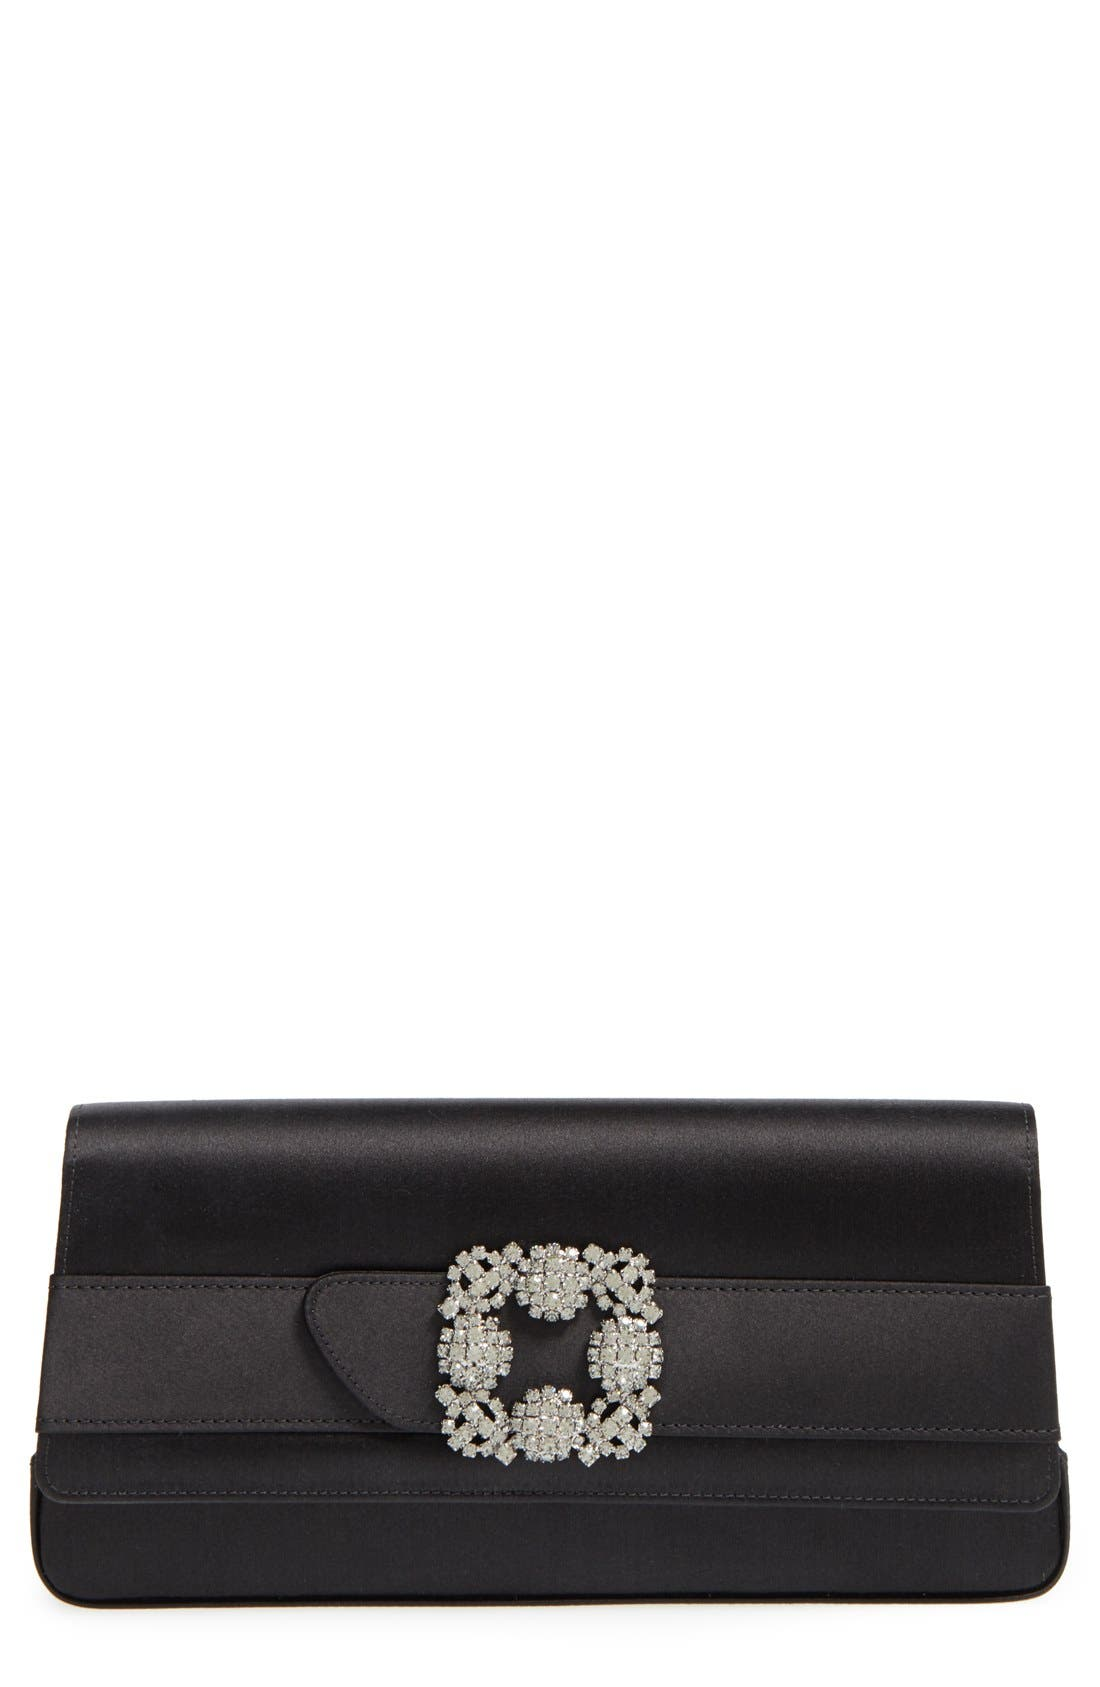 'Gothisi' Clutch,                             Main thumbnail 1, color,                             002